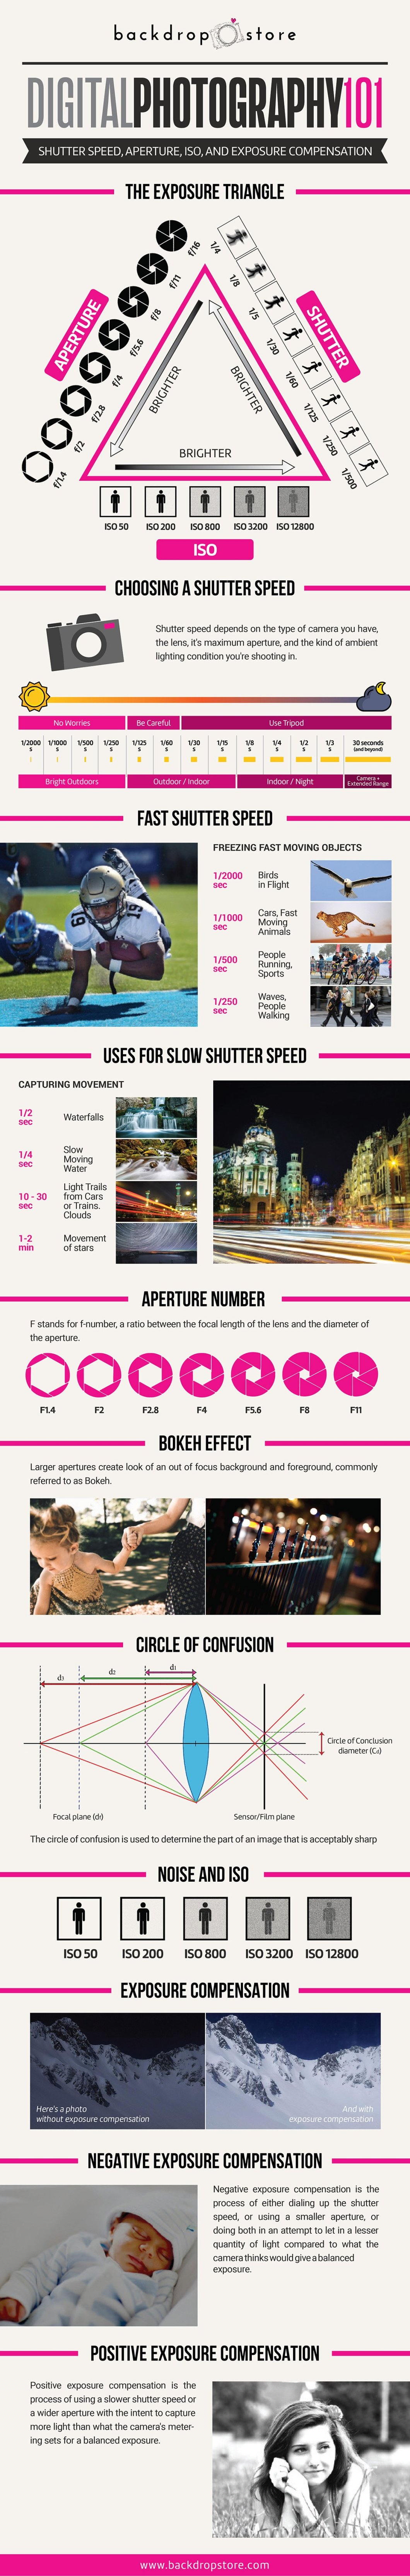 How to Make Photographs: Digital Photography 101 - Infographic